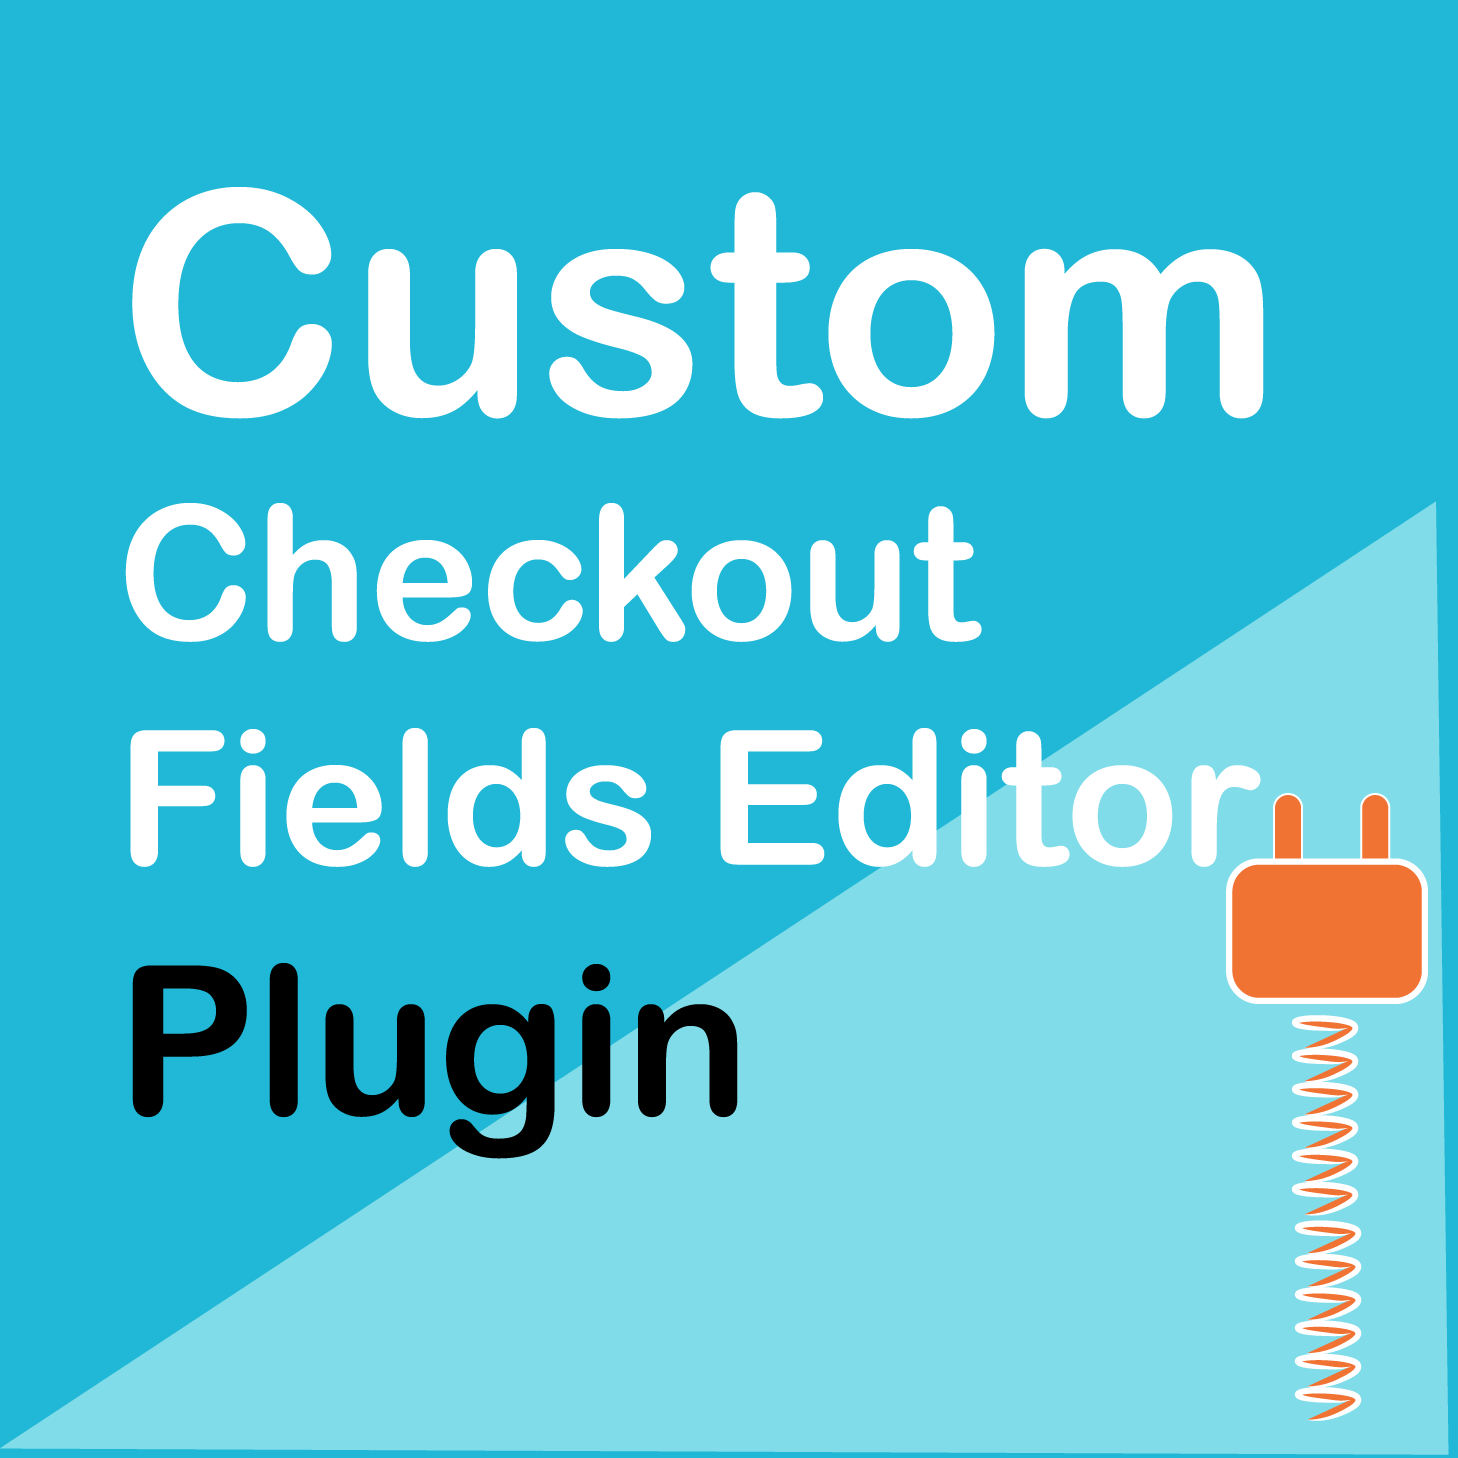 WooCommerce Checkout Field Editor Pro, Nulled? No Need! 80